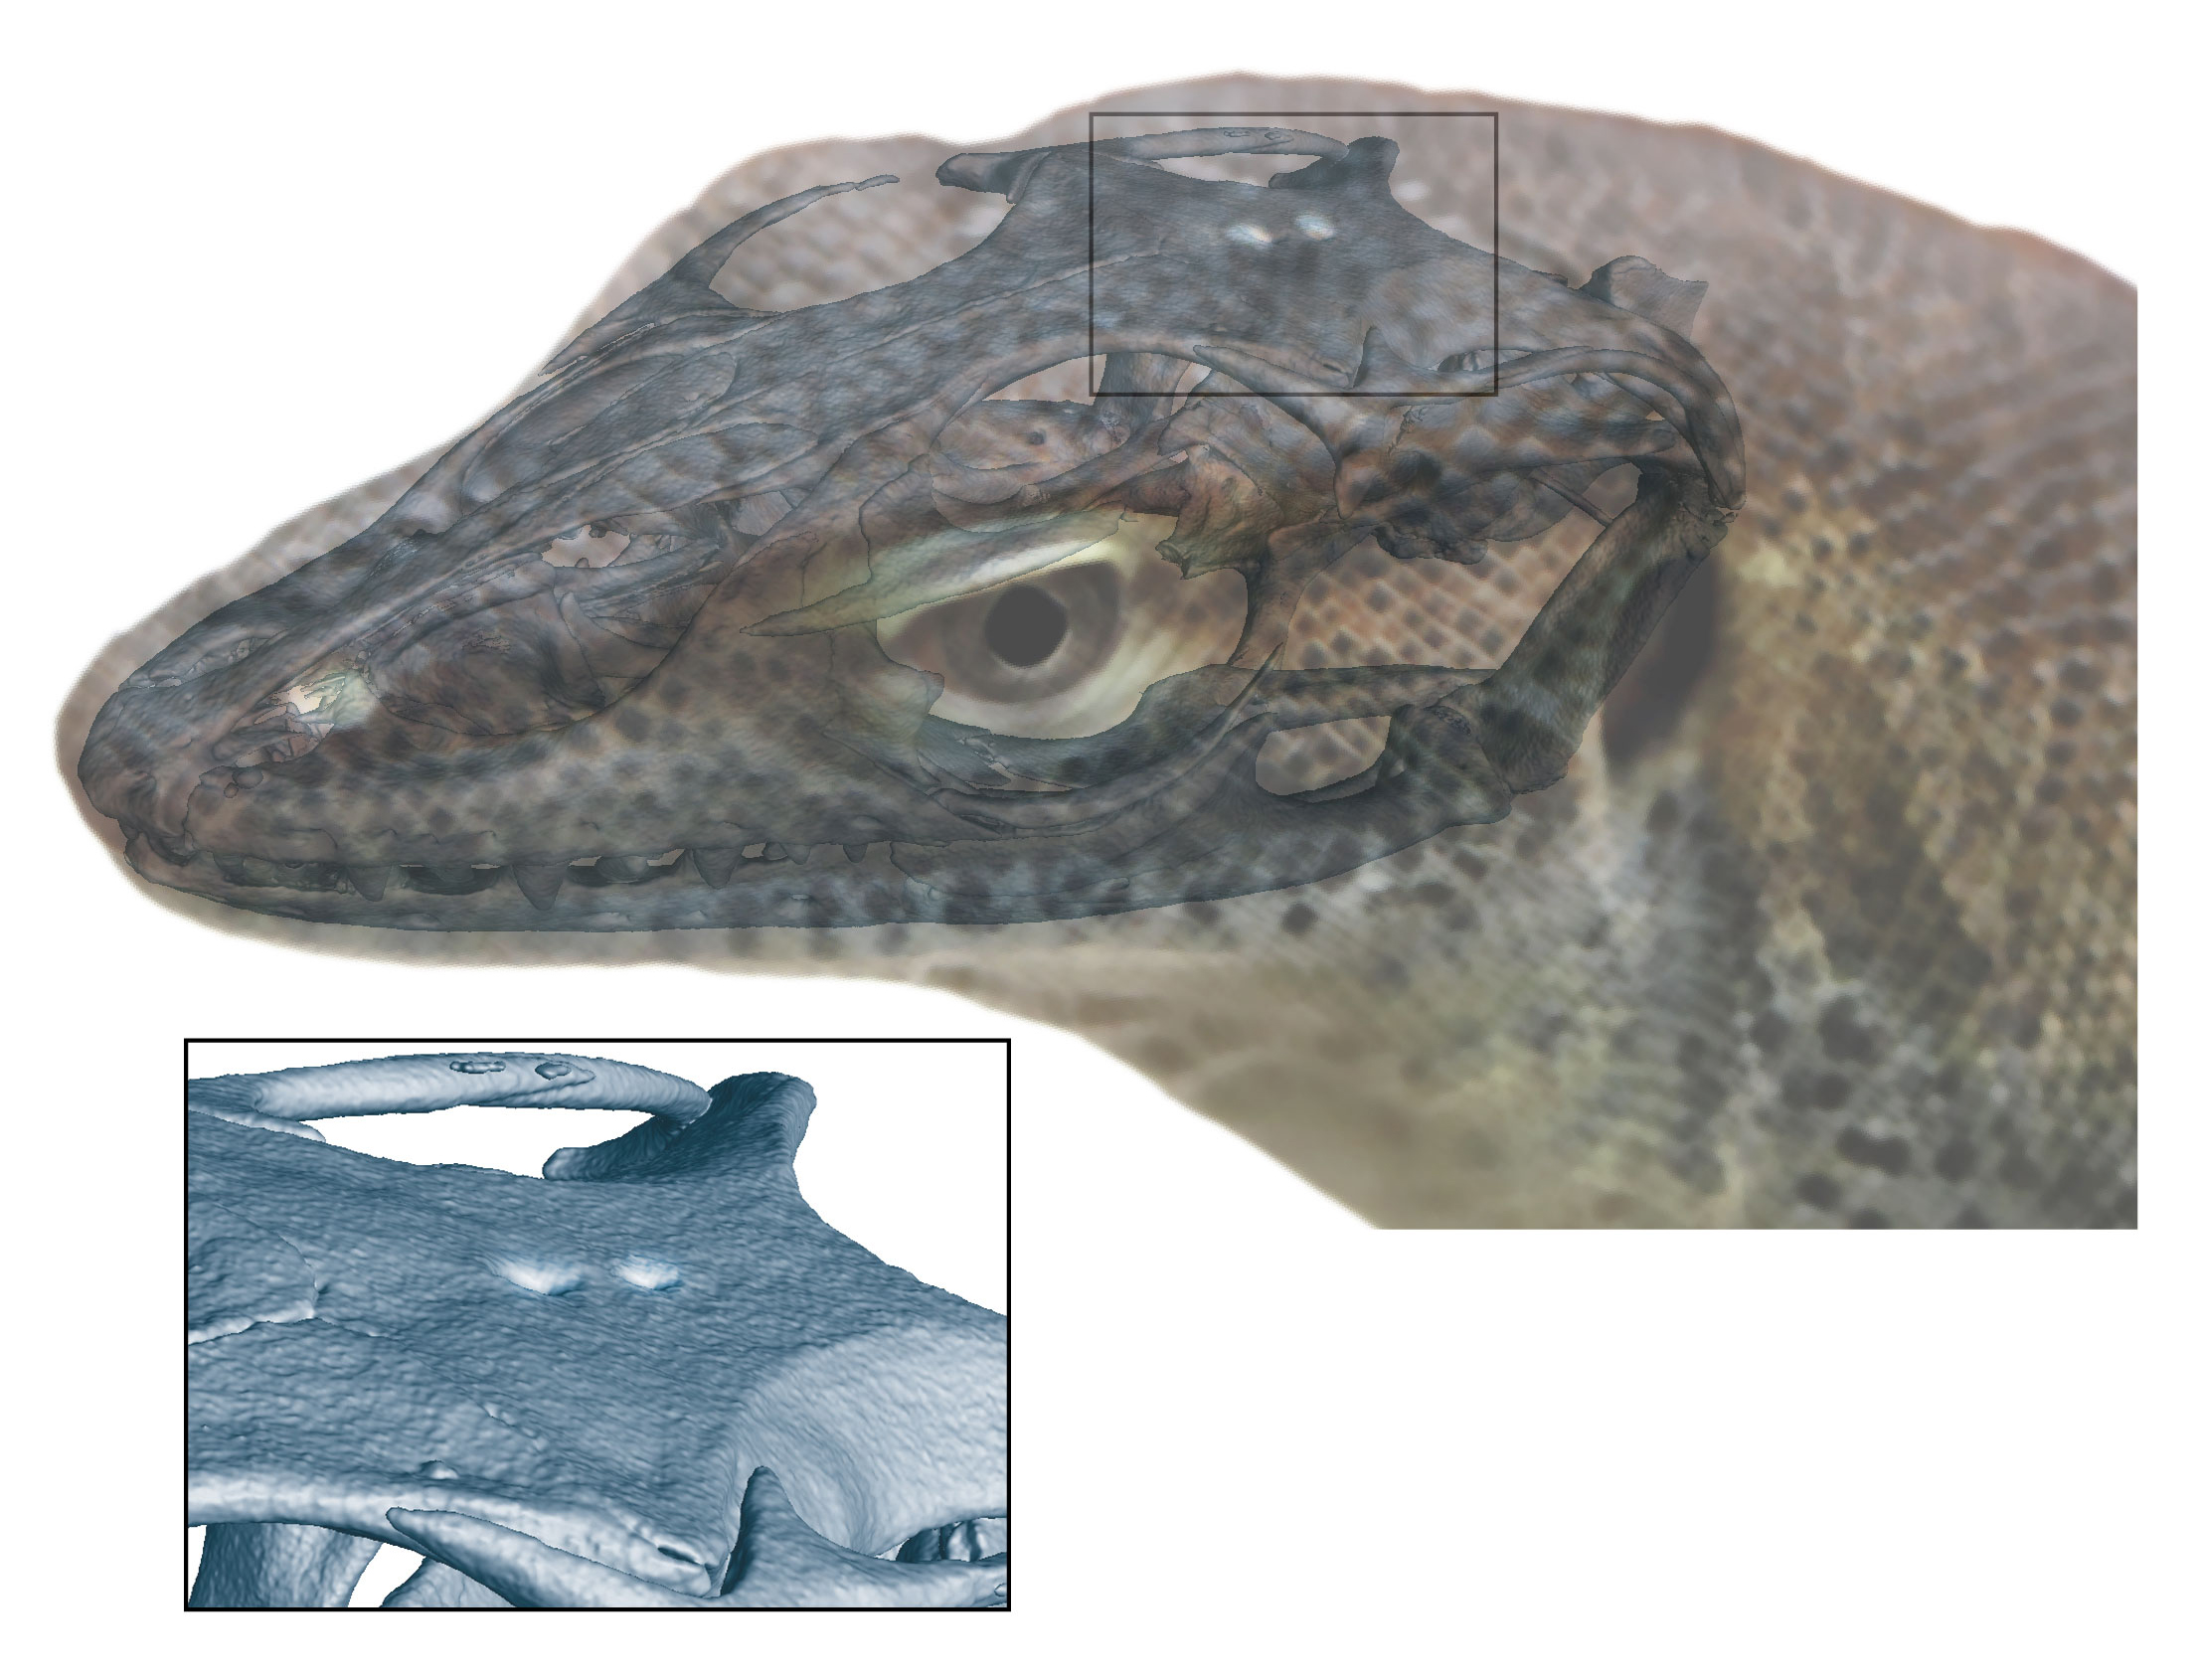 An extinct species of monitor lizard had a third and fourth eye, giving new insight into the evolution of eye-like structures located on the top of the head.